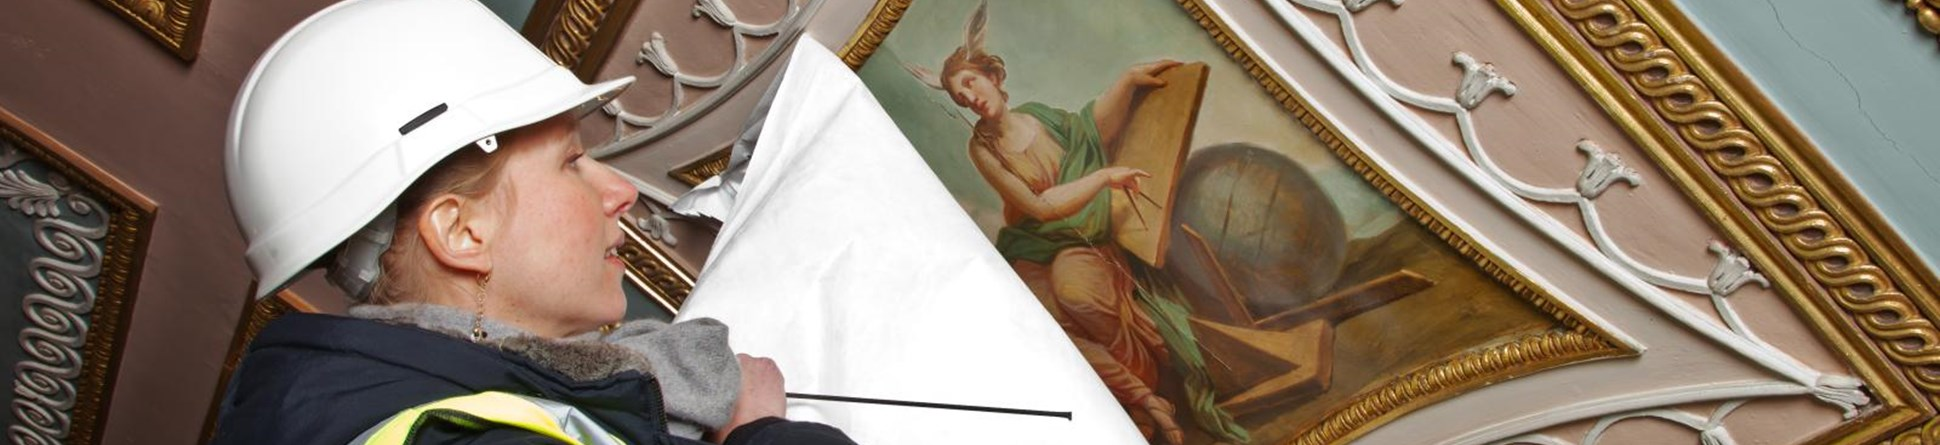 A woman peeling a protective sheet of a ceiling fresco.